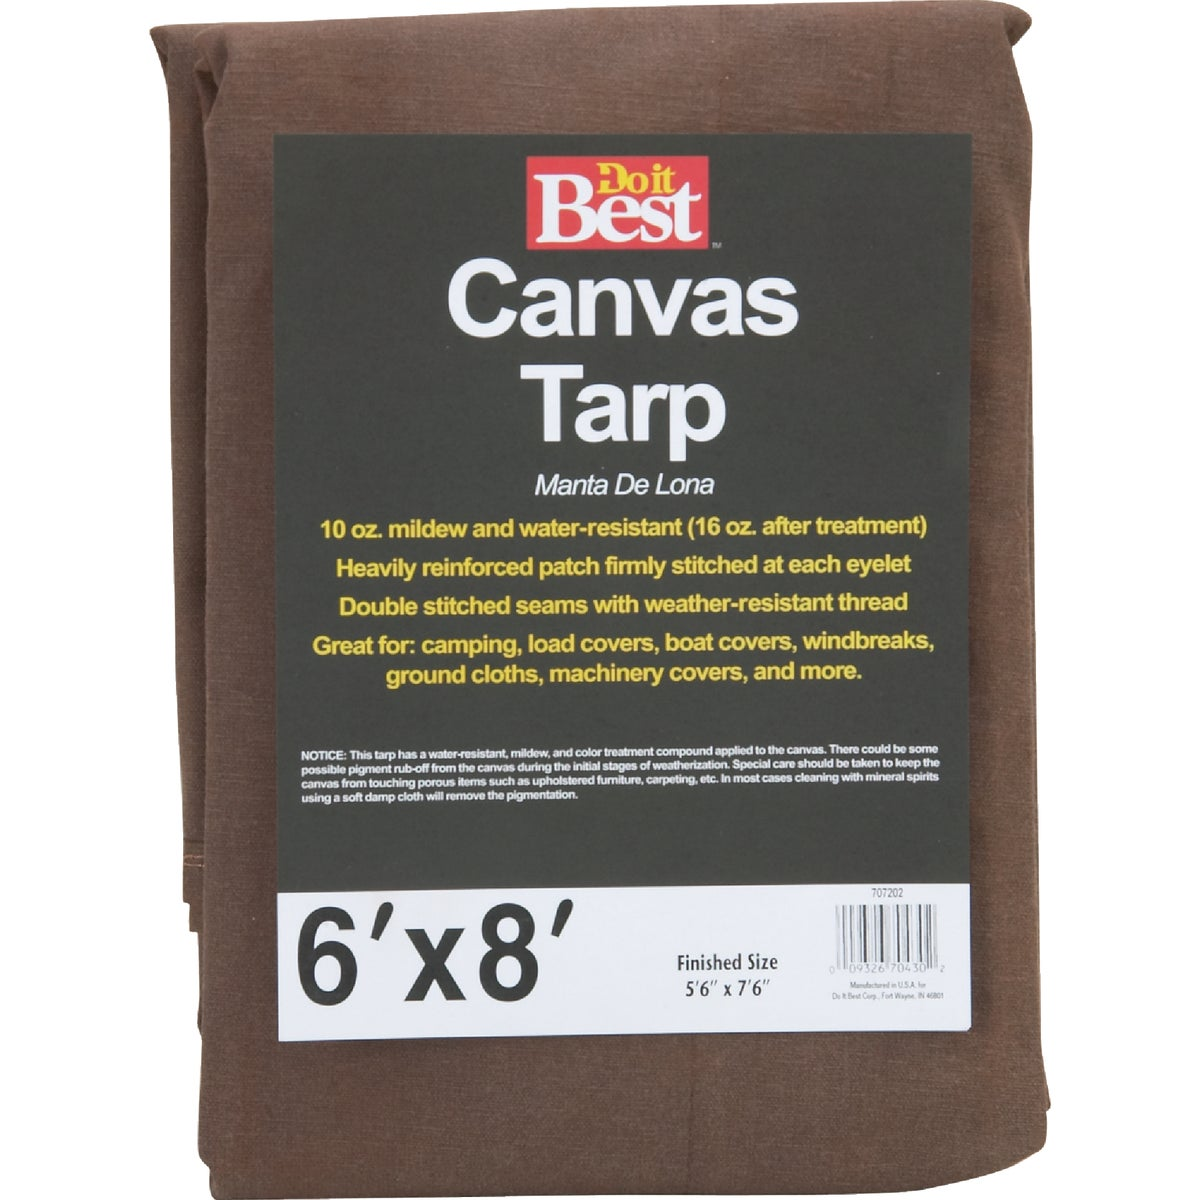 6X8-10OZ CANVAS TARP - TCR10006008T by Gosport Mfg Co